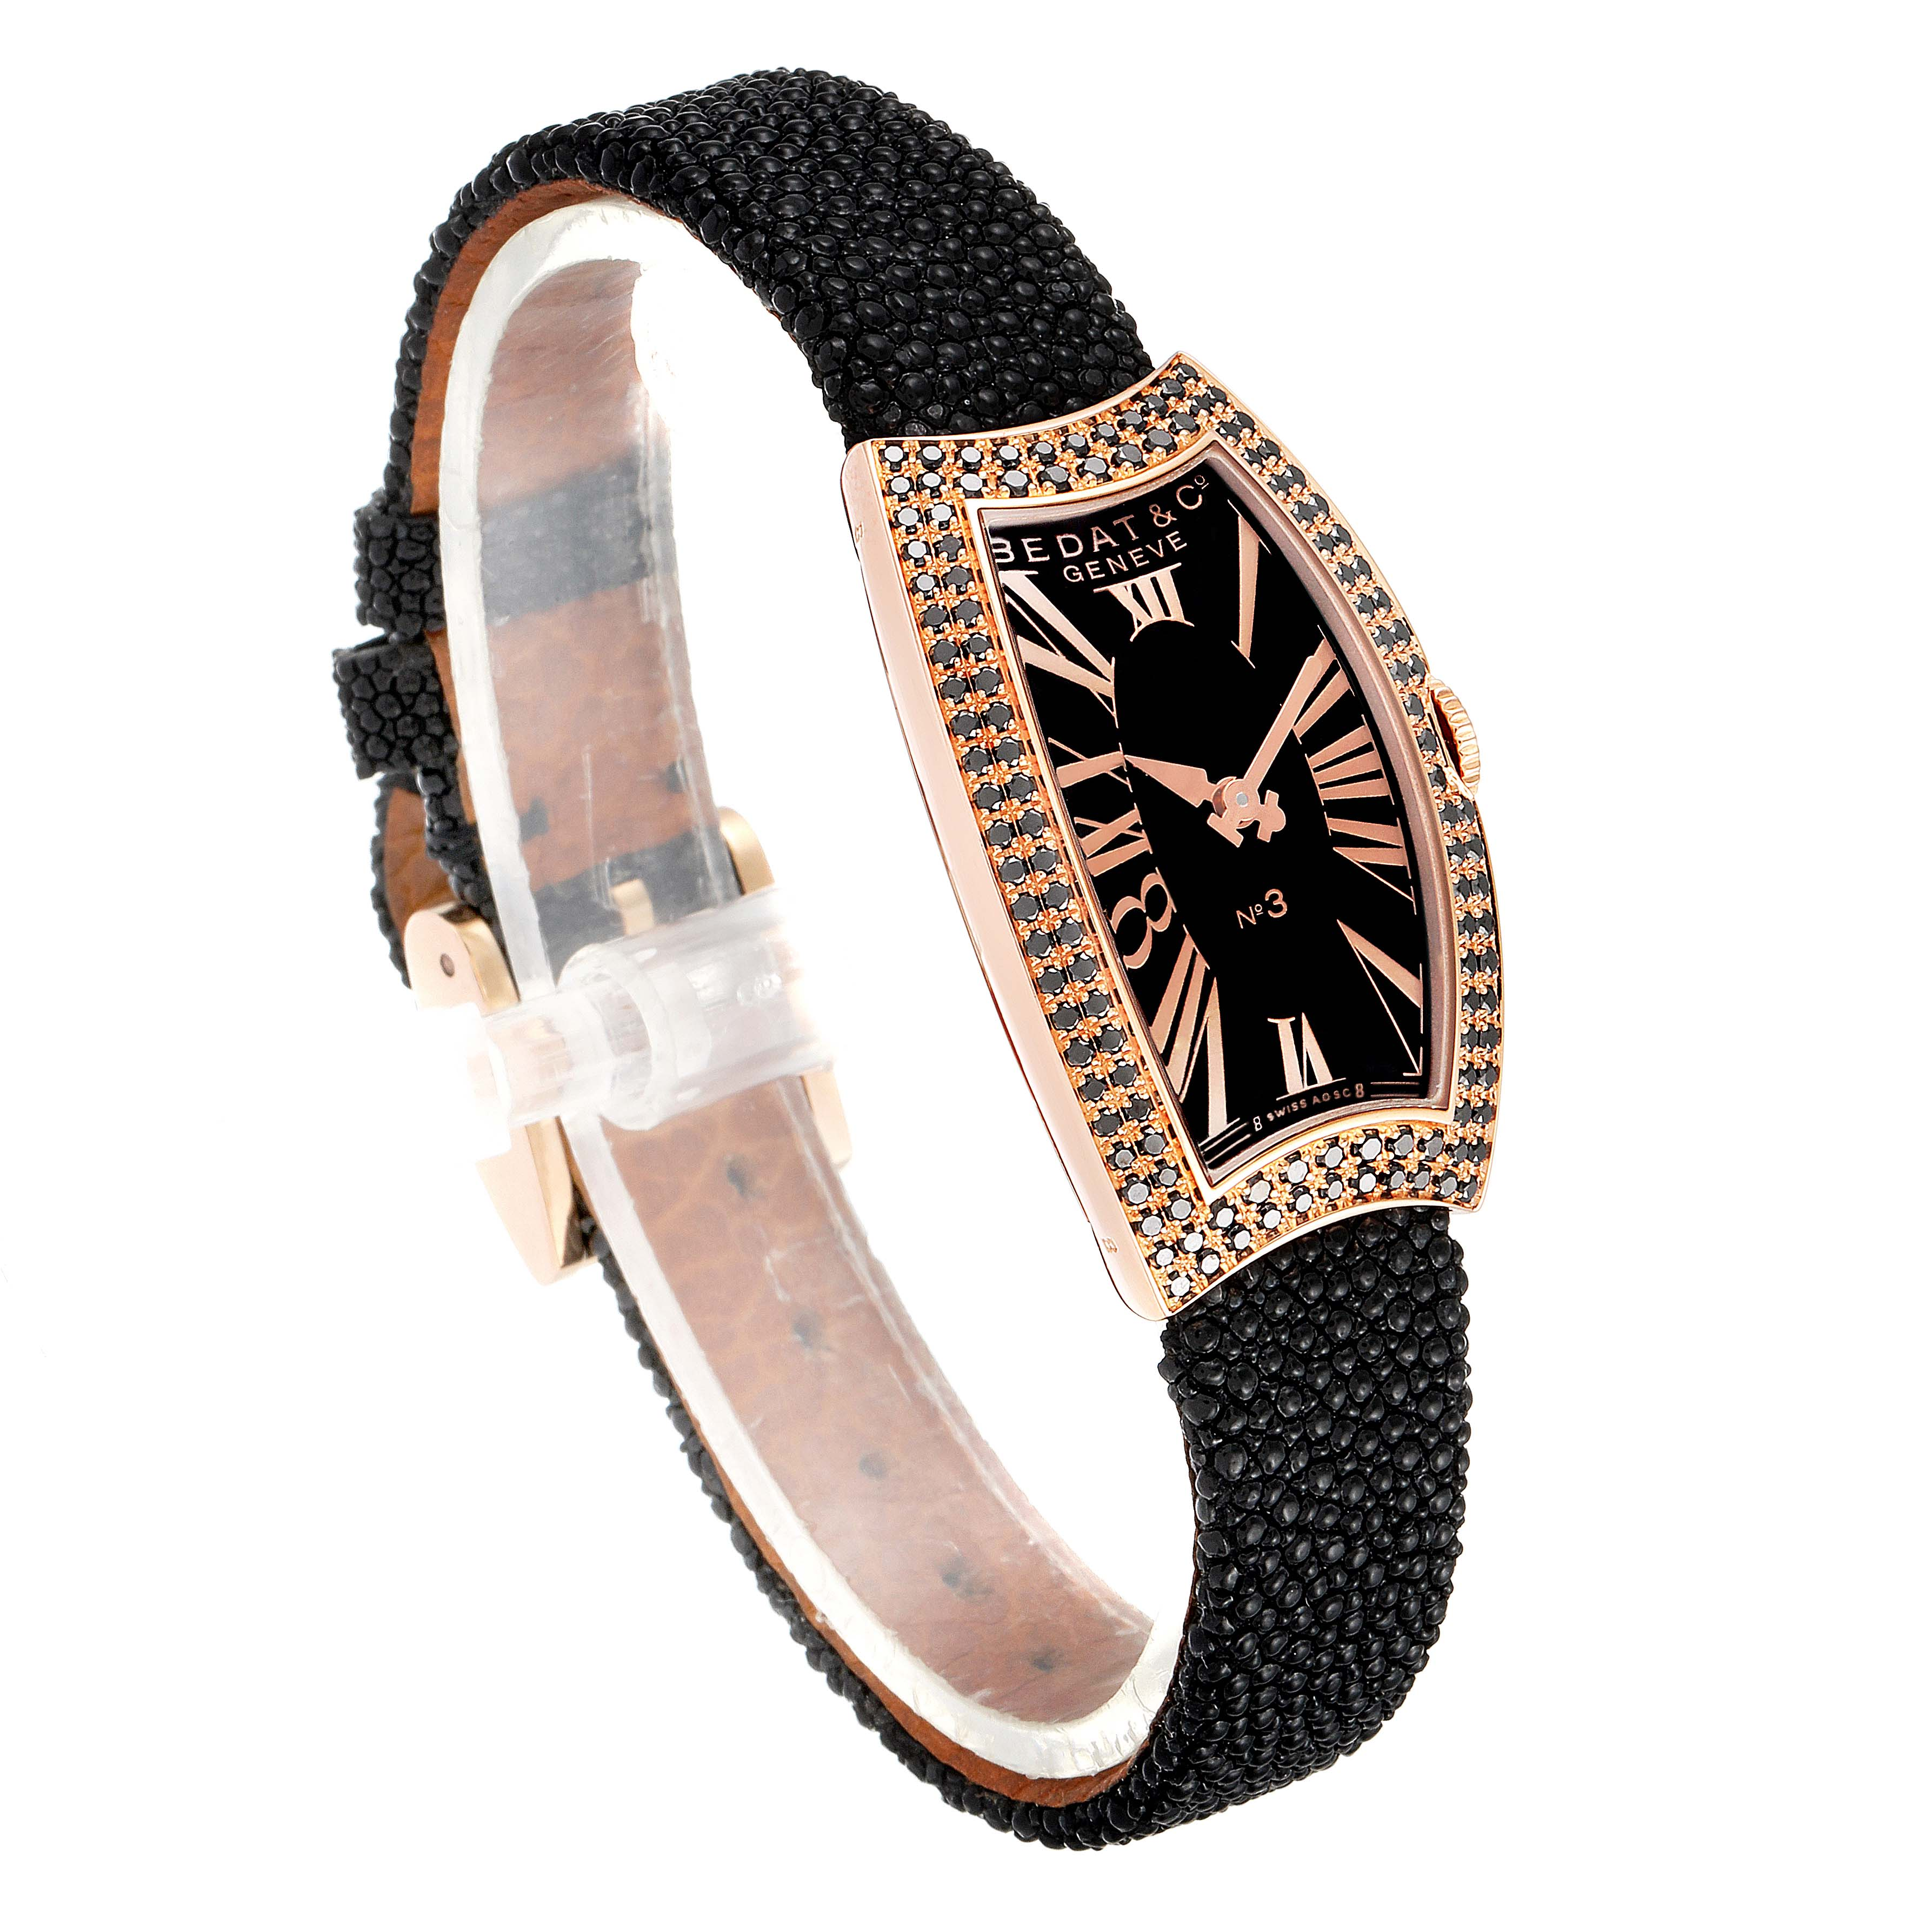 Bedat No. 3 Rose Gold Black Diamonds Stingray Strap Ladies Watch 384.490.305 SwissWatchExpo